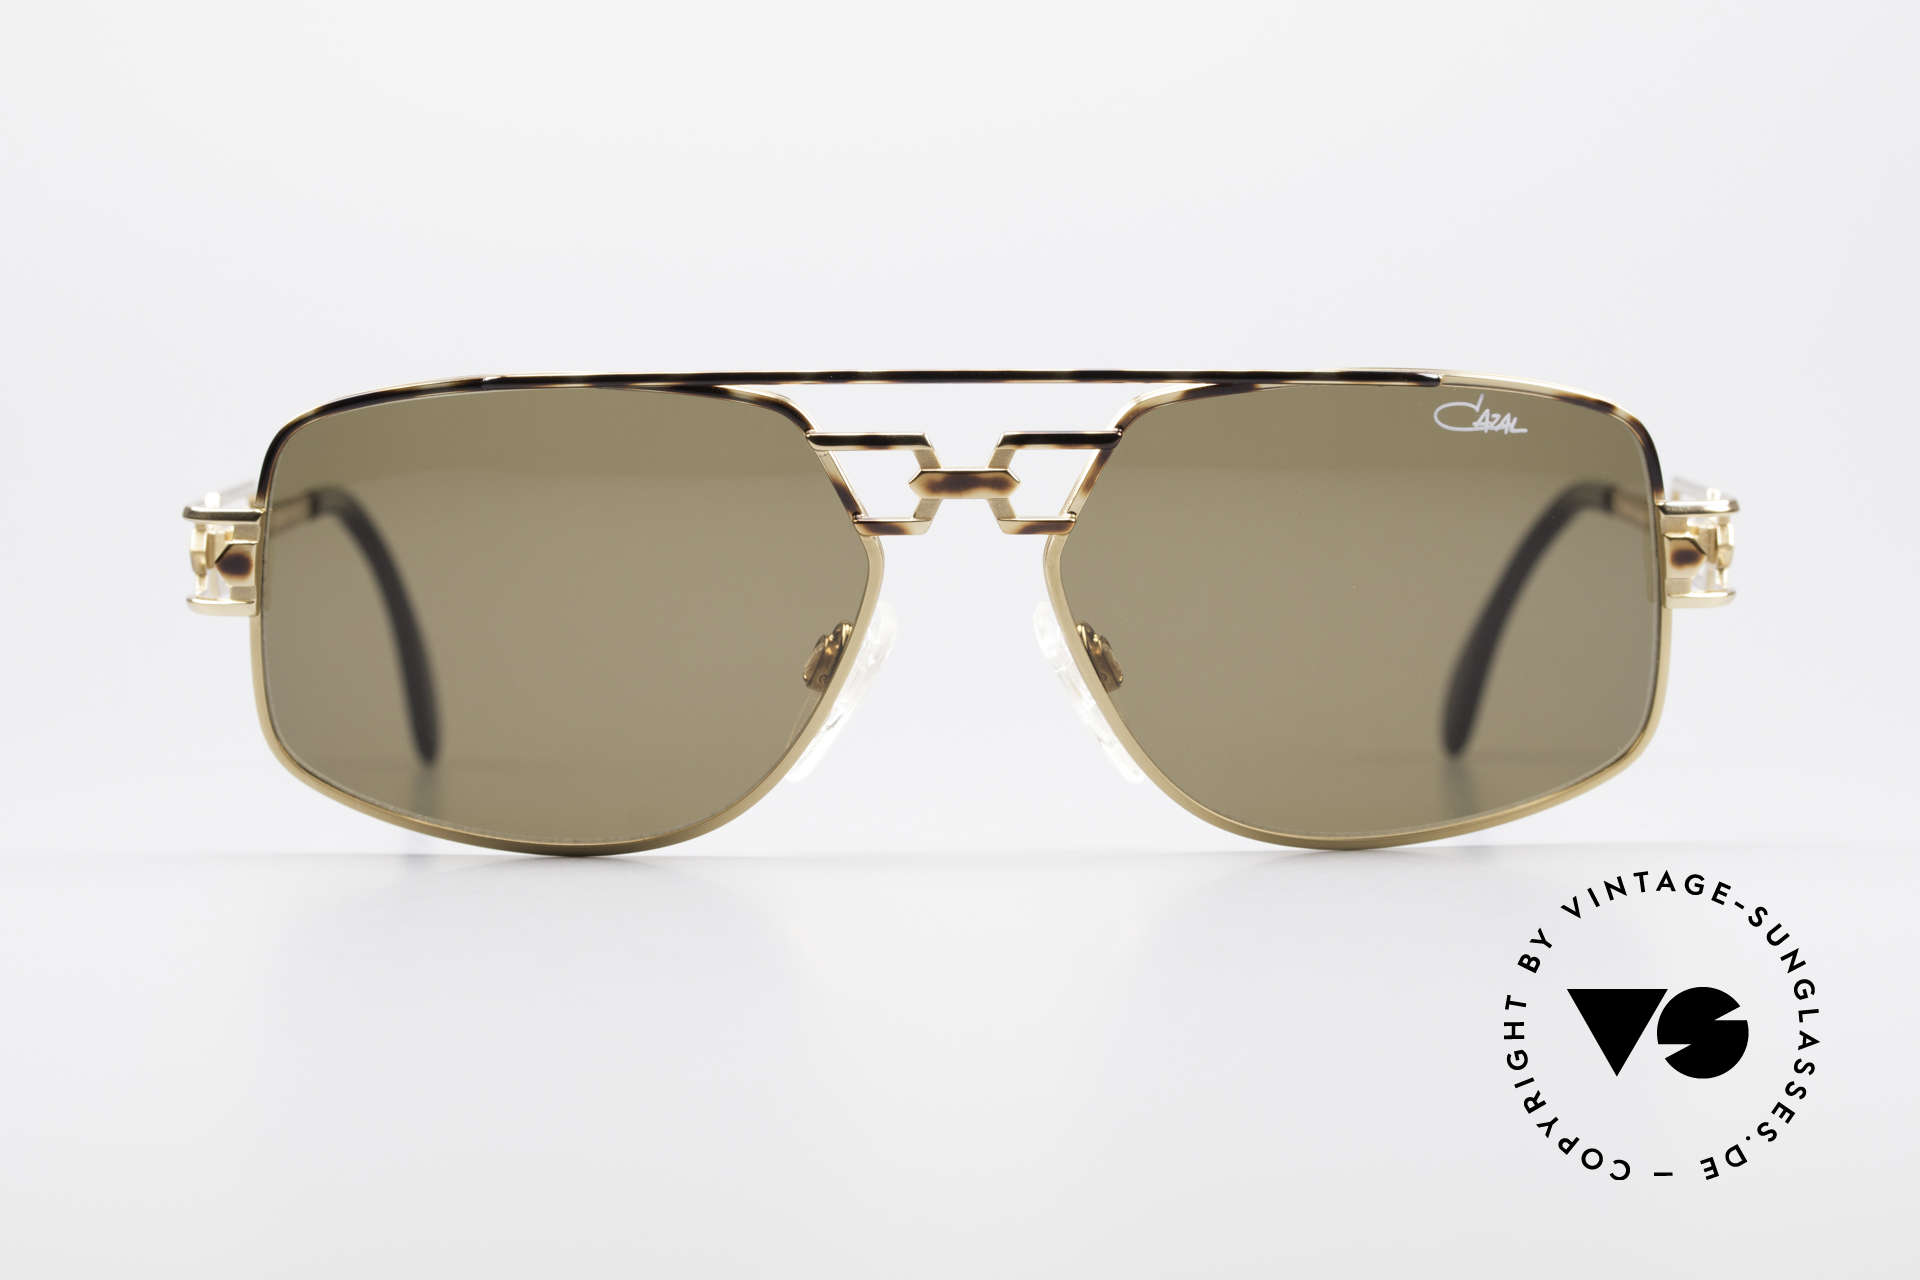 Cazal 972 Rare Designer Sunglasses 90's, high-end quality 'made in GERMANY' (crafted in Passau), Made for Men and Women